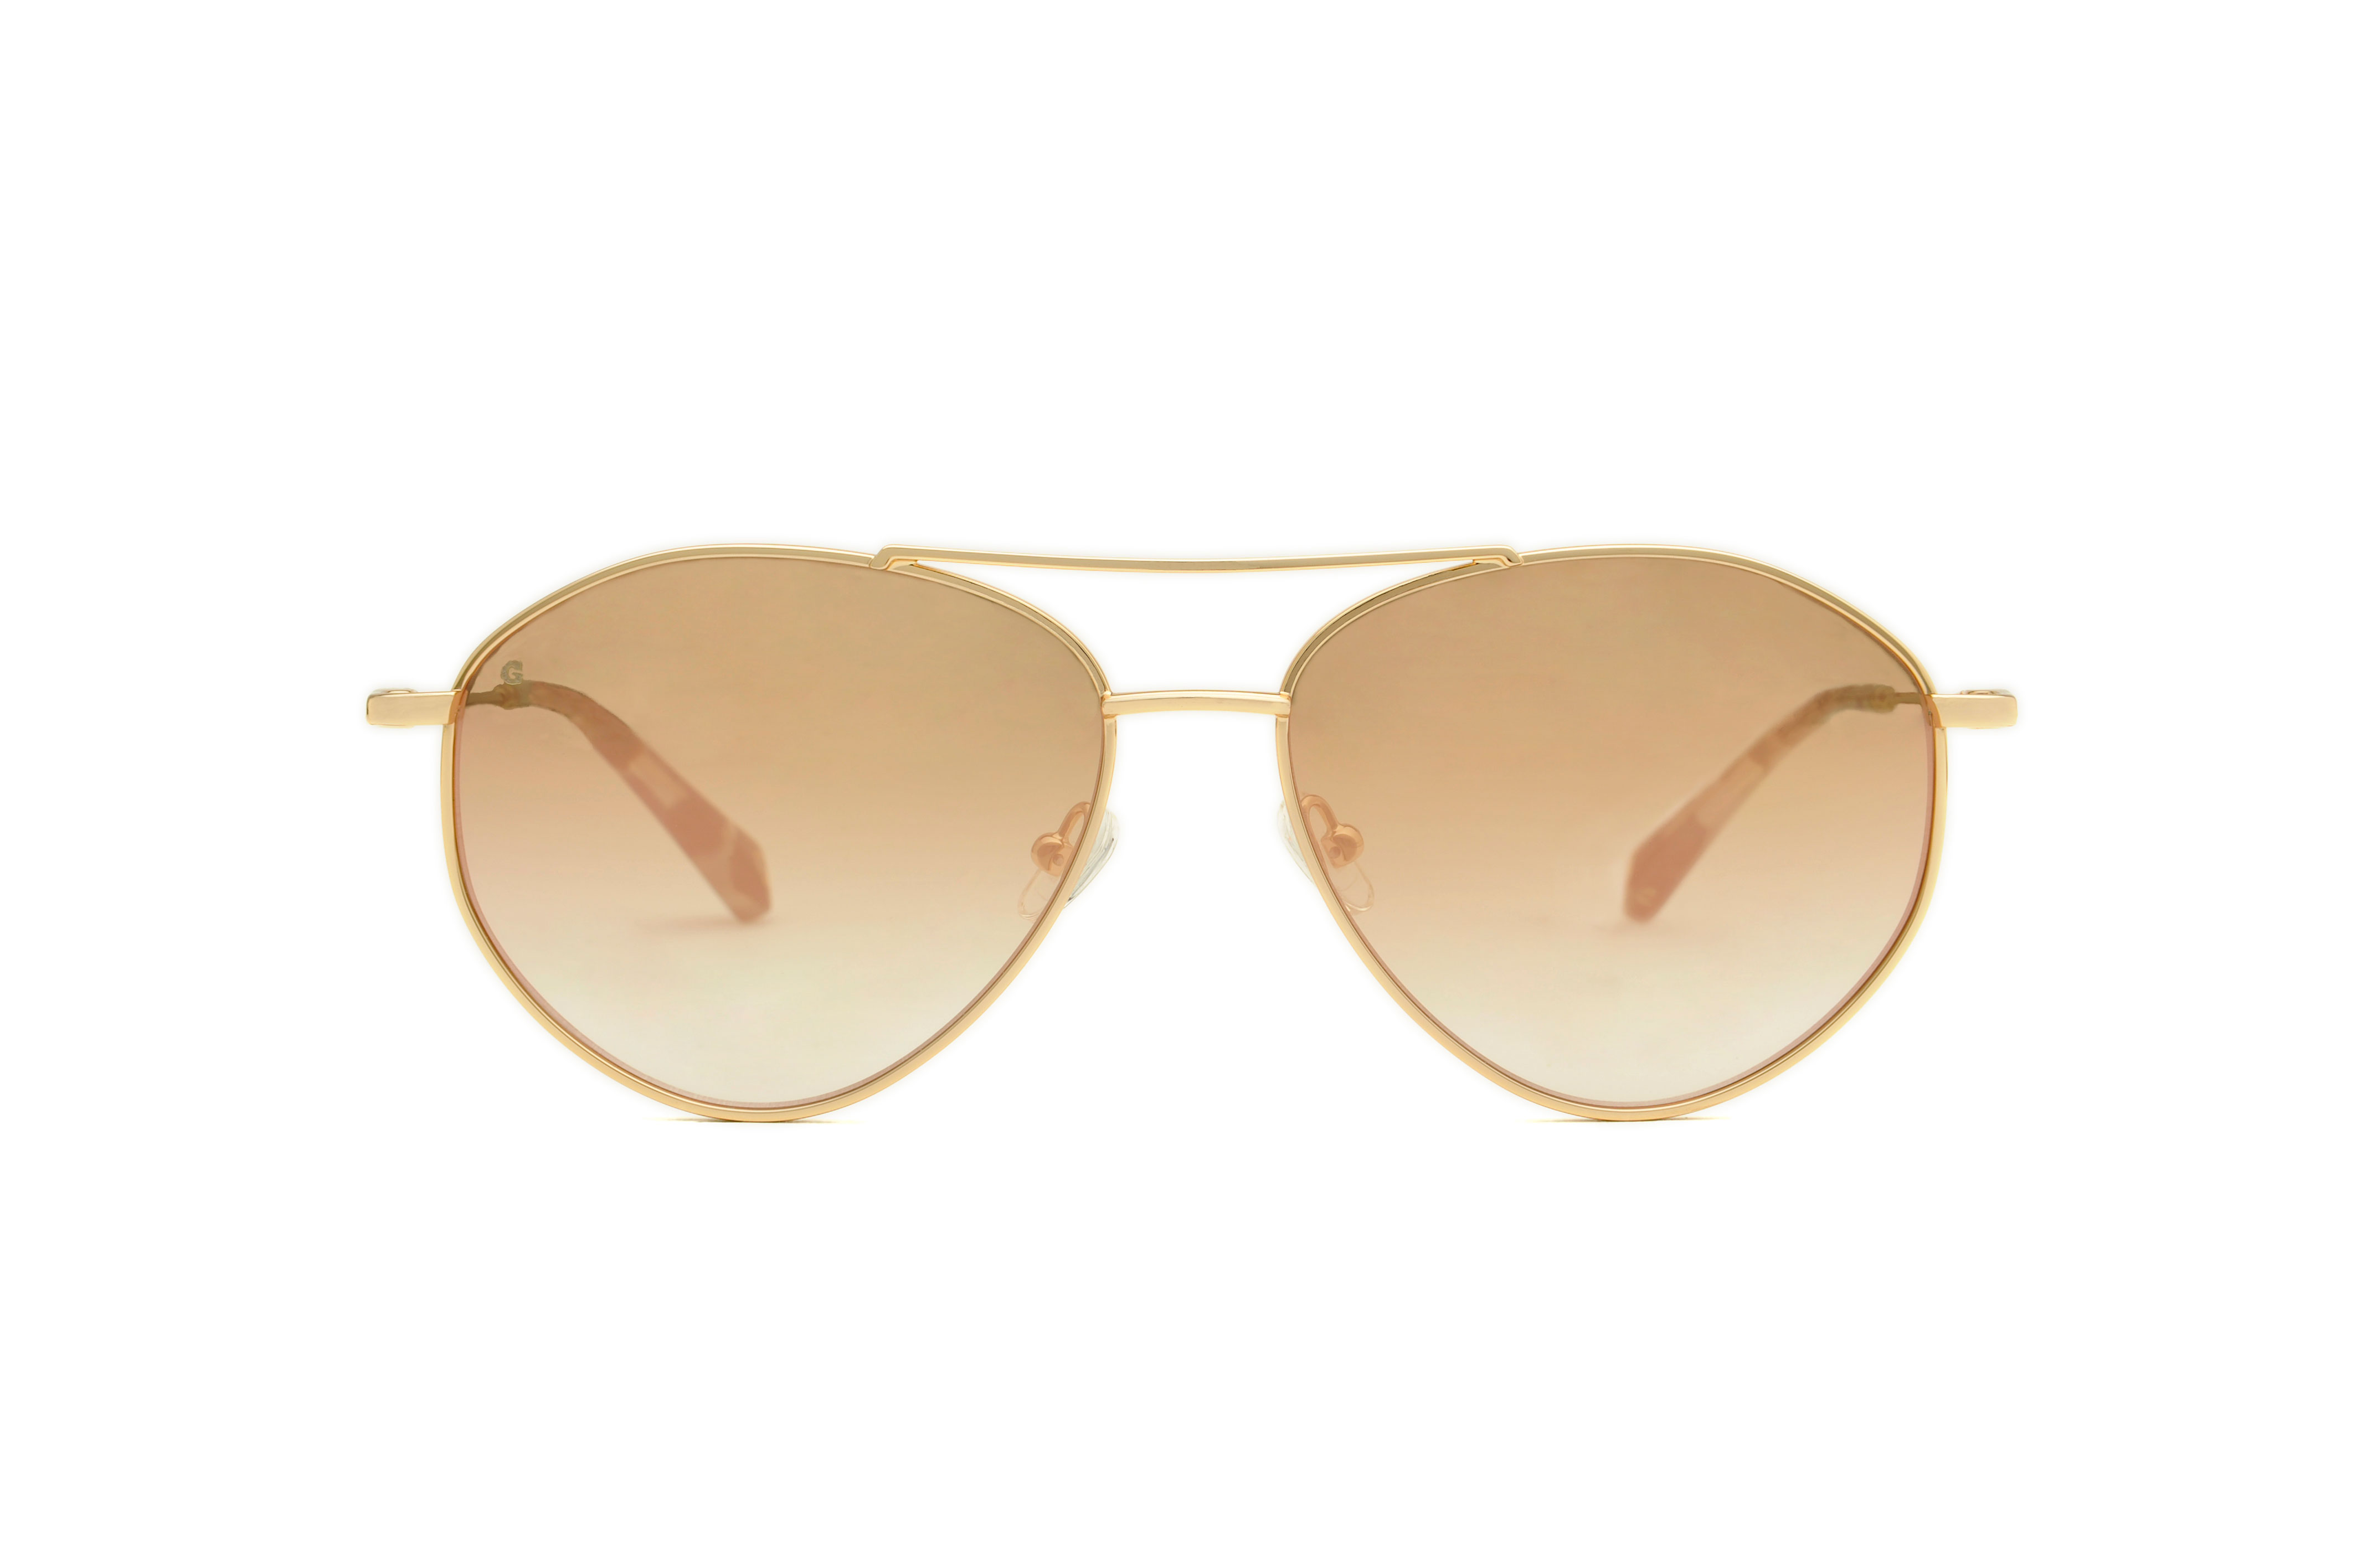 Metropolis metal aviator gold sunglasses by GIGI Studios